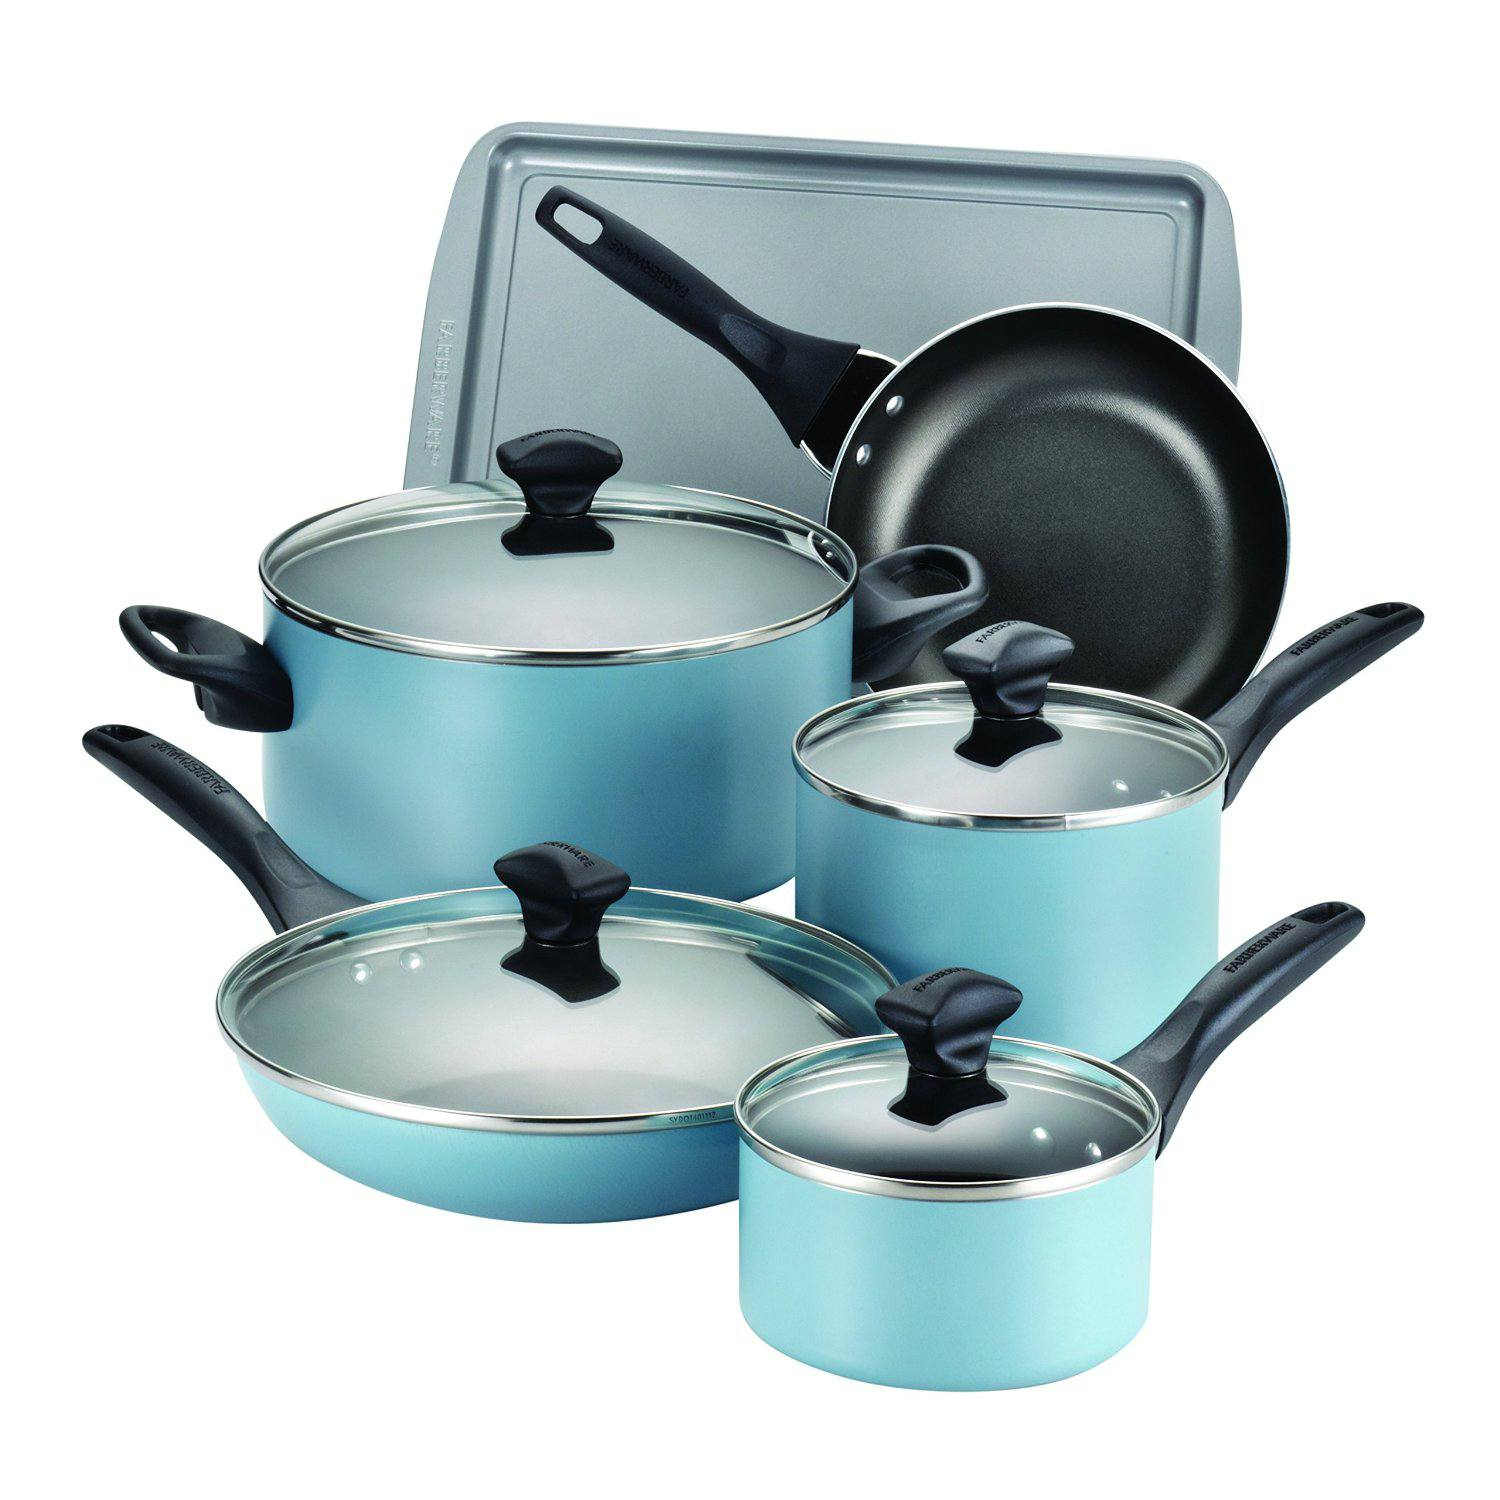 Farberware 15 Piece Dishwasher Safe Nonstick Cookware Set Aqua